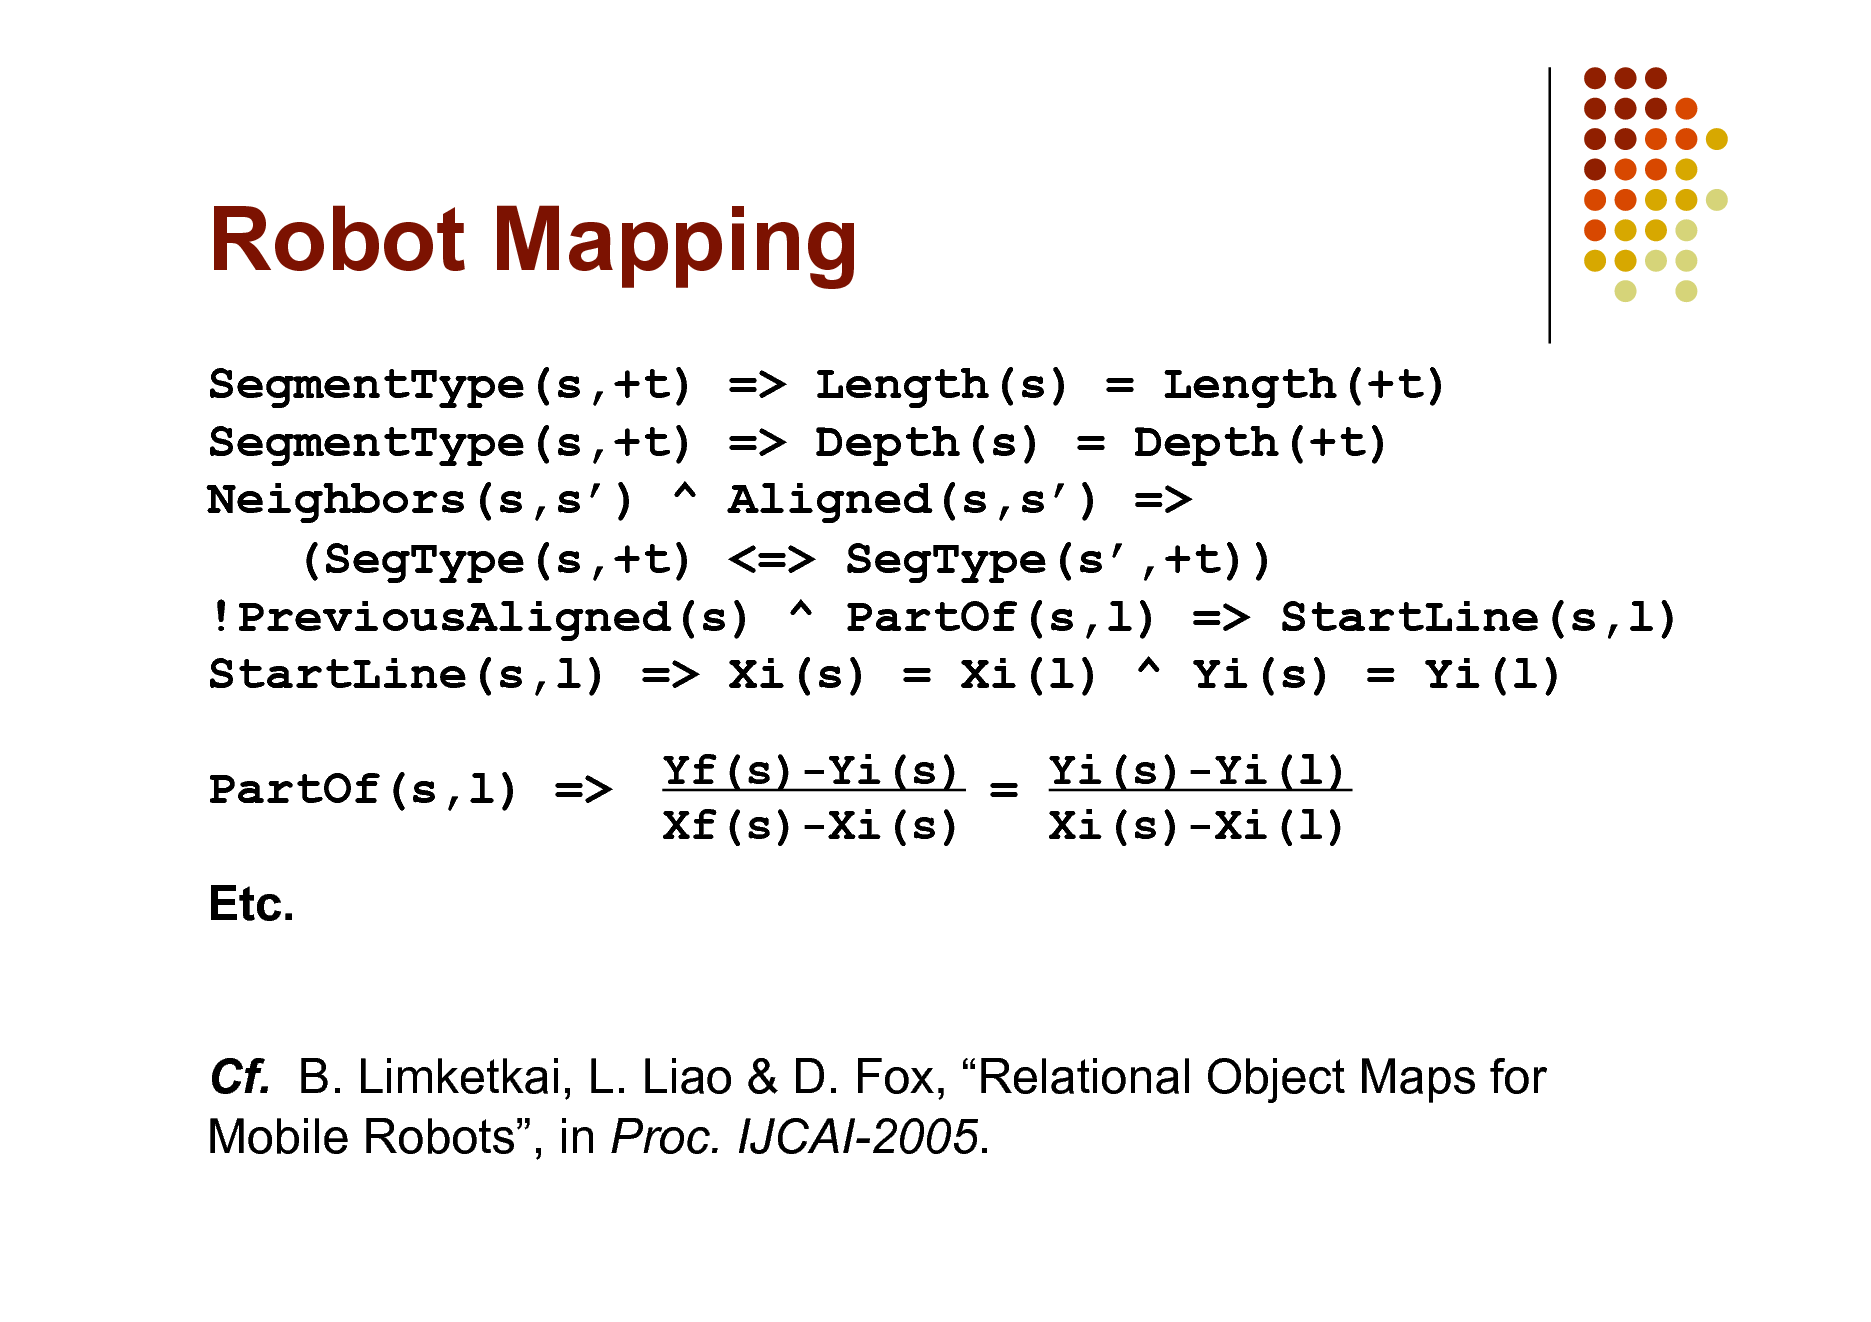 Slide: Robot Mapping SegmentType(s,+t) => Length(s) = Length(+t) SegmentType(s,+t) => Depth(s) = Depth(+t) Neighbors(s,s) ^ Aligned(s,s) => (SegType(s,+t) <=> SegType(s,+t)) !PreviousAligned(s) ^ PartOf(s,l) => StartLine(s,l) StartLine(s,l) => Xi(s) = Xi(l) ^ Yi(s) = Yi(l) PartOf(s,l) => Etc. Cf. B. Limketkai, L. Liao & D. Fox, Relational Object Maps for Mobile Robots, in Proc. IJCAI-2005. Yf(s)-Yi(s) = Yi(s)-Yi(l) Xf(s)-Xi(s) Xi(s)-Xi(l)